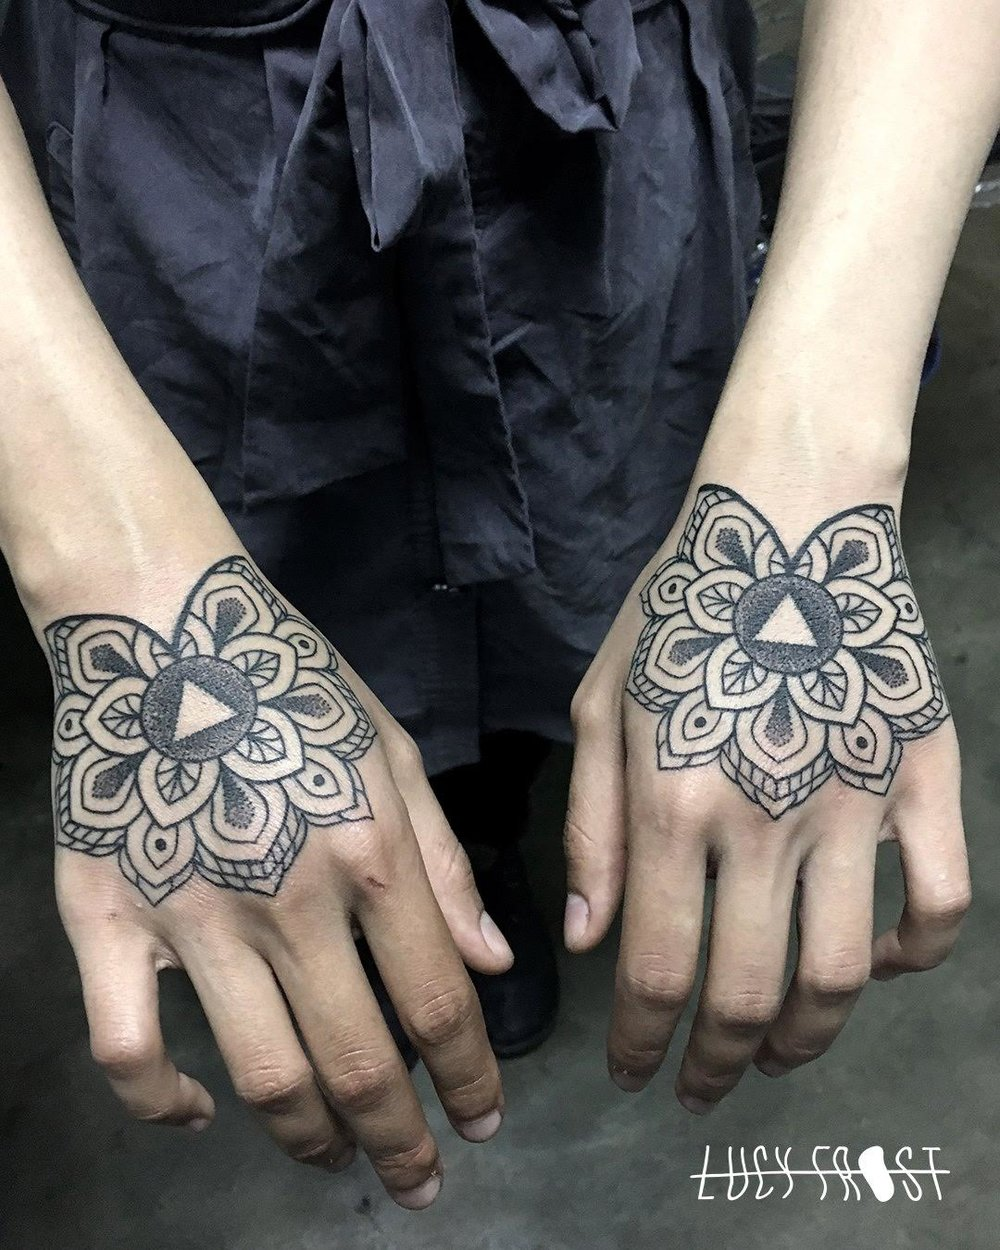 lucy frost  hands tattoo.jpg